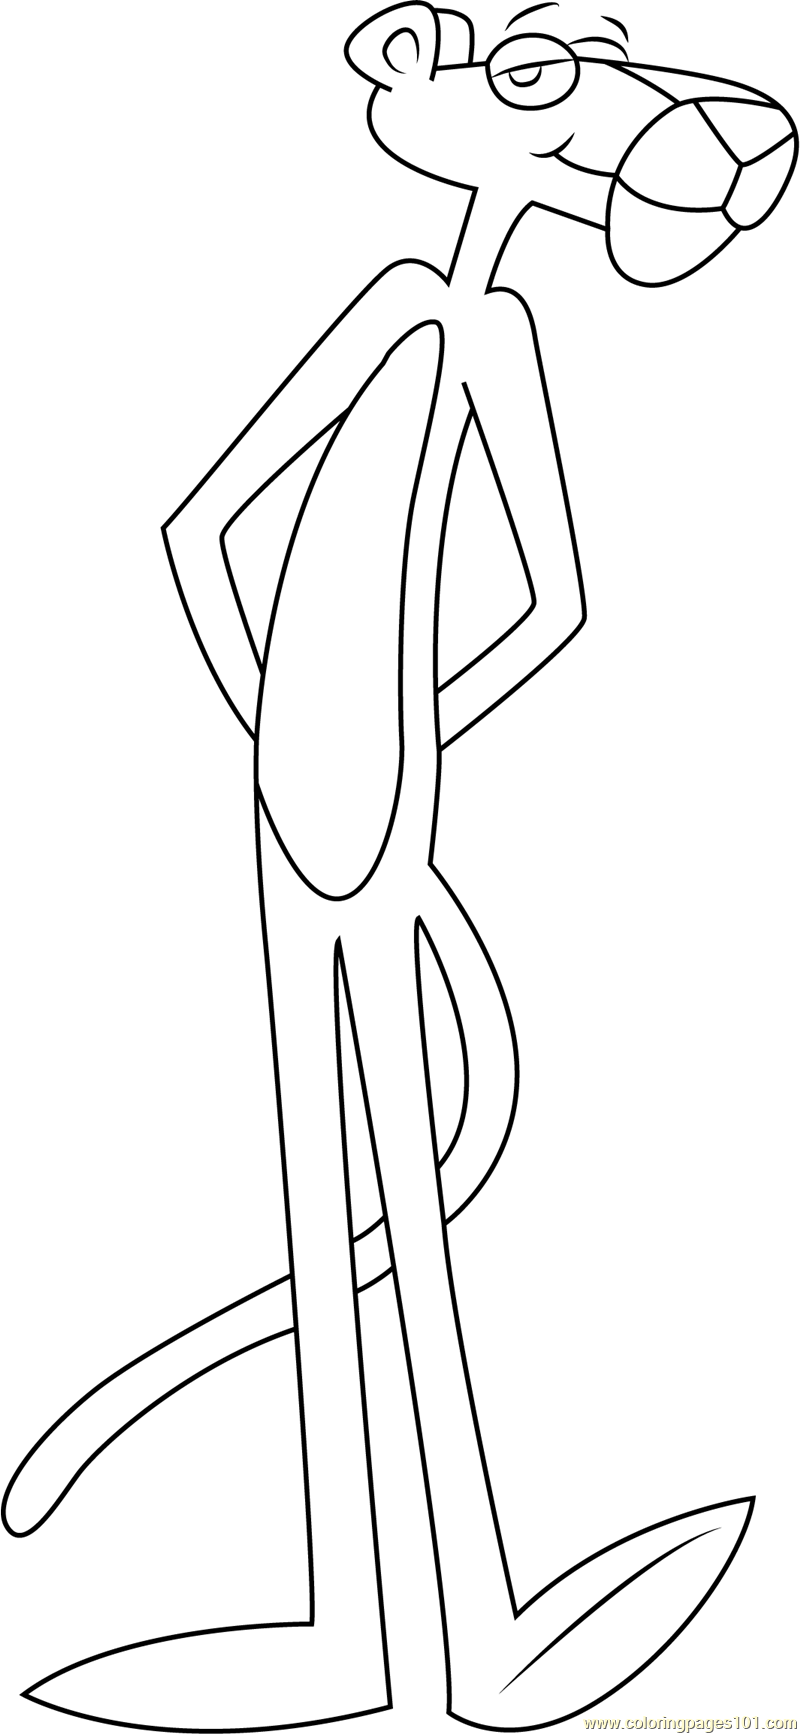 pink panther coloring pages top 10 pink panther coloring pages for your toddler coloring panther pink pages